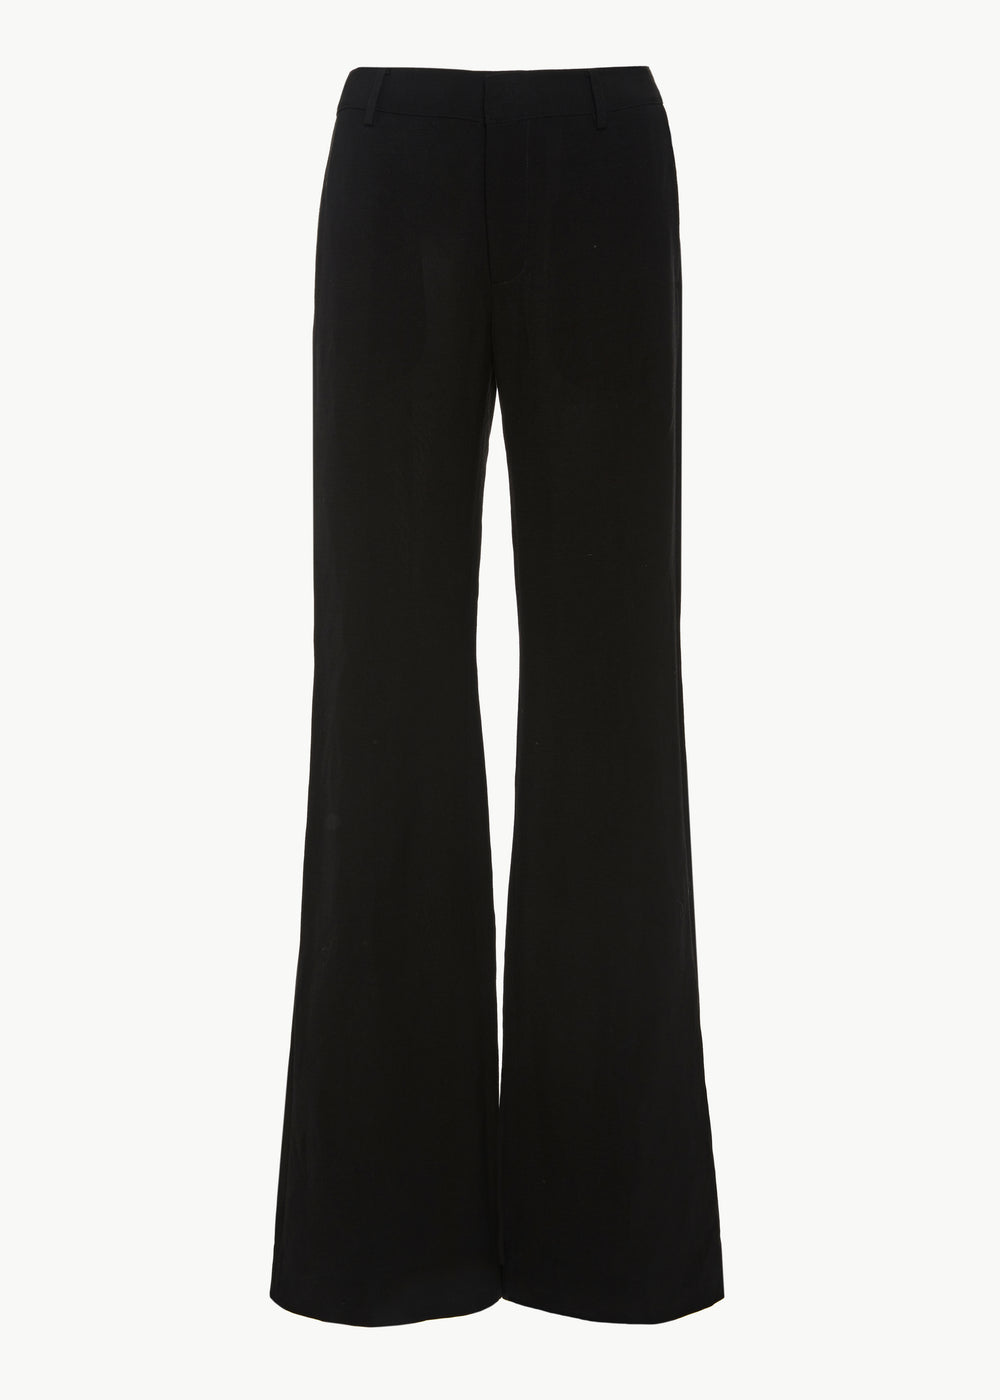 Flare Leg Trouser in Viscose Linen - Black - CO